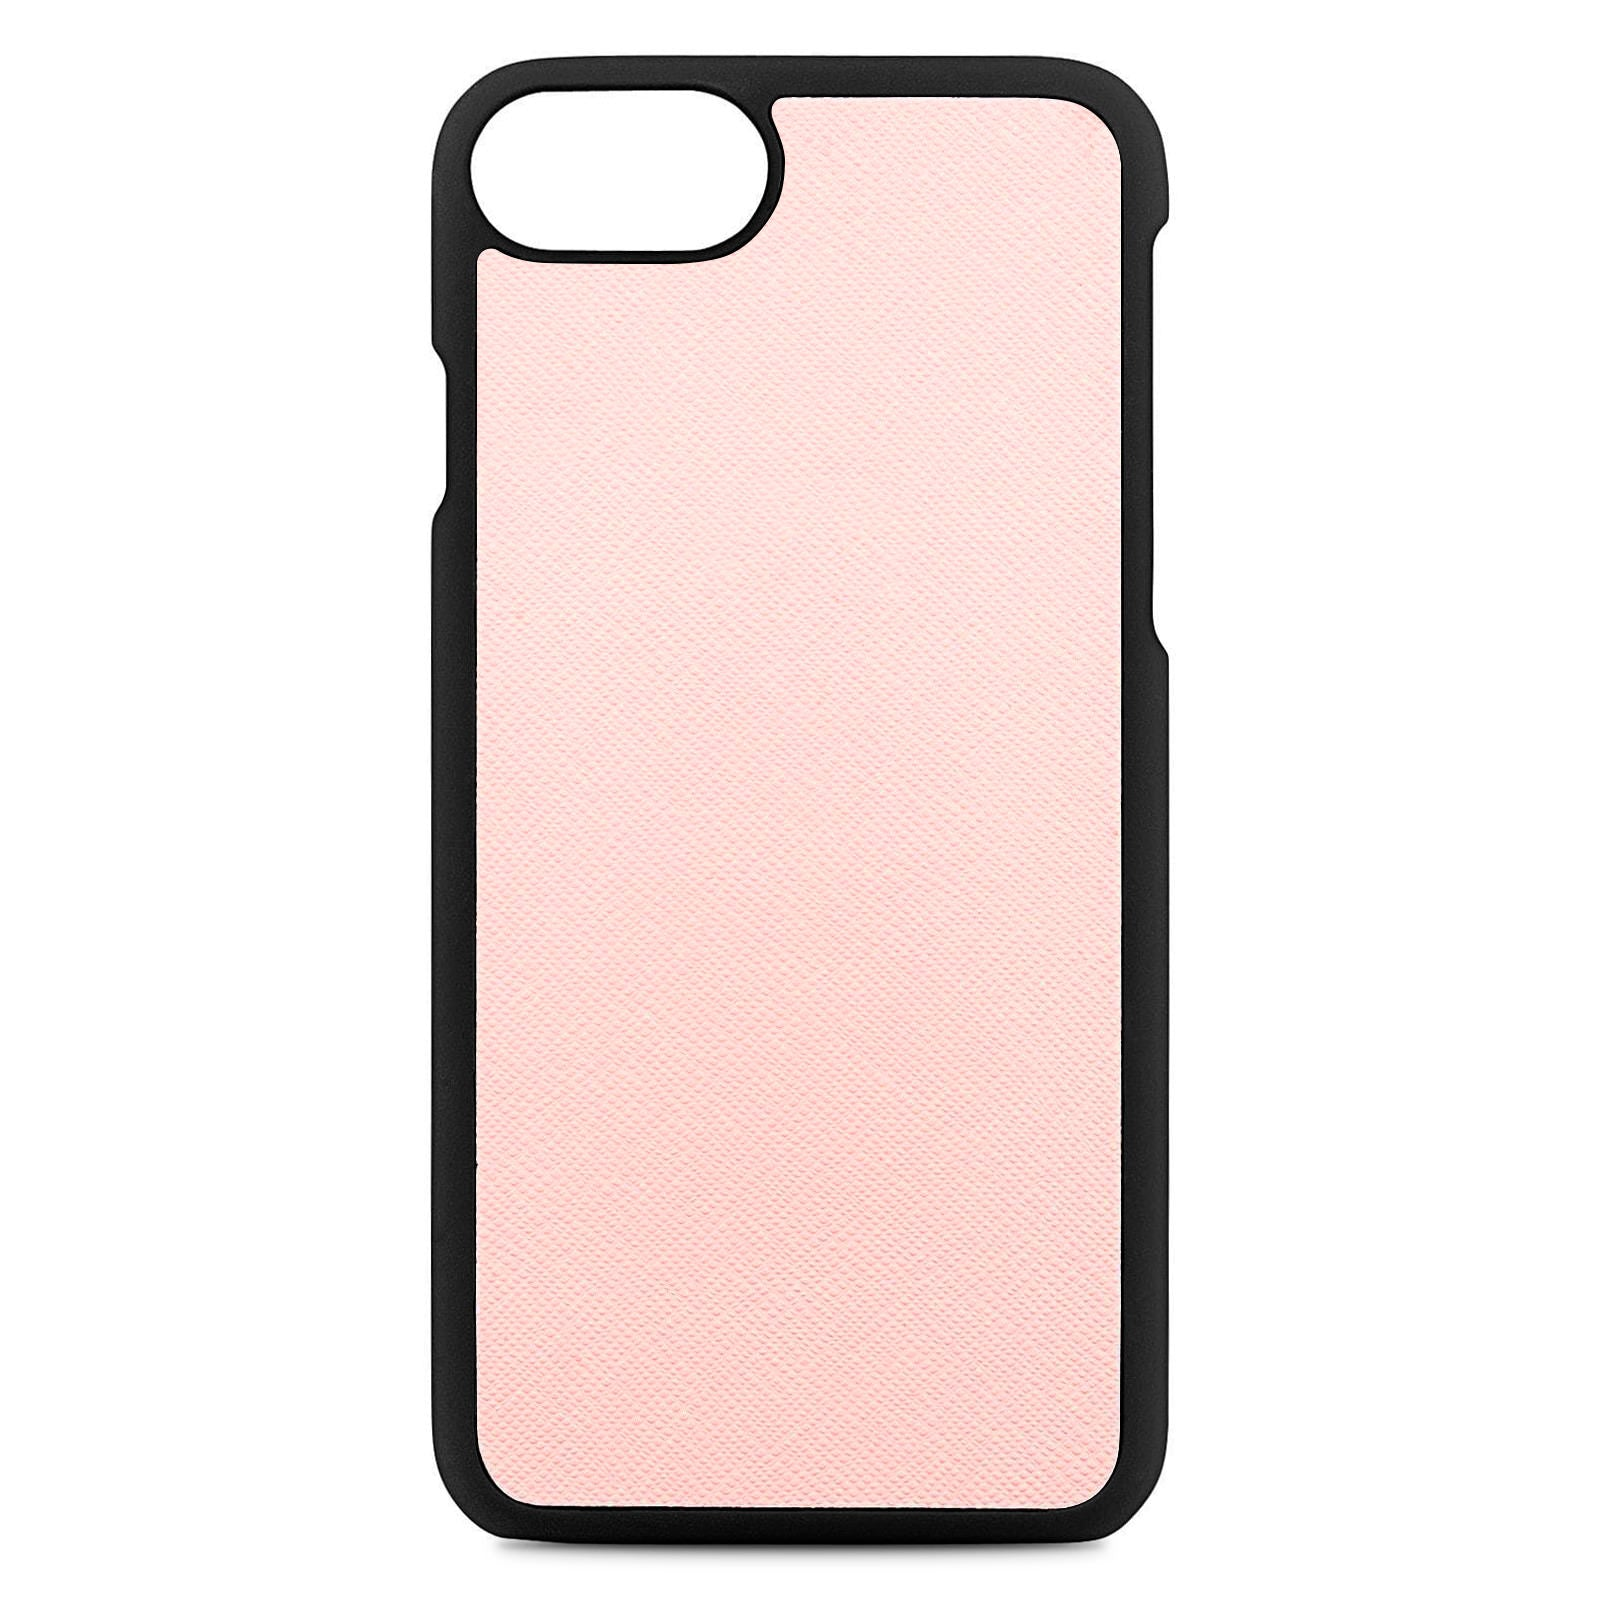 Blank Personalised Pink Saffiano Leather iPhone Case